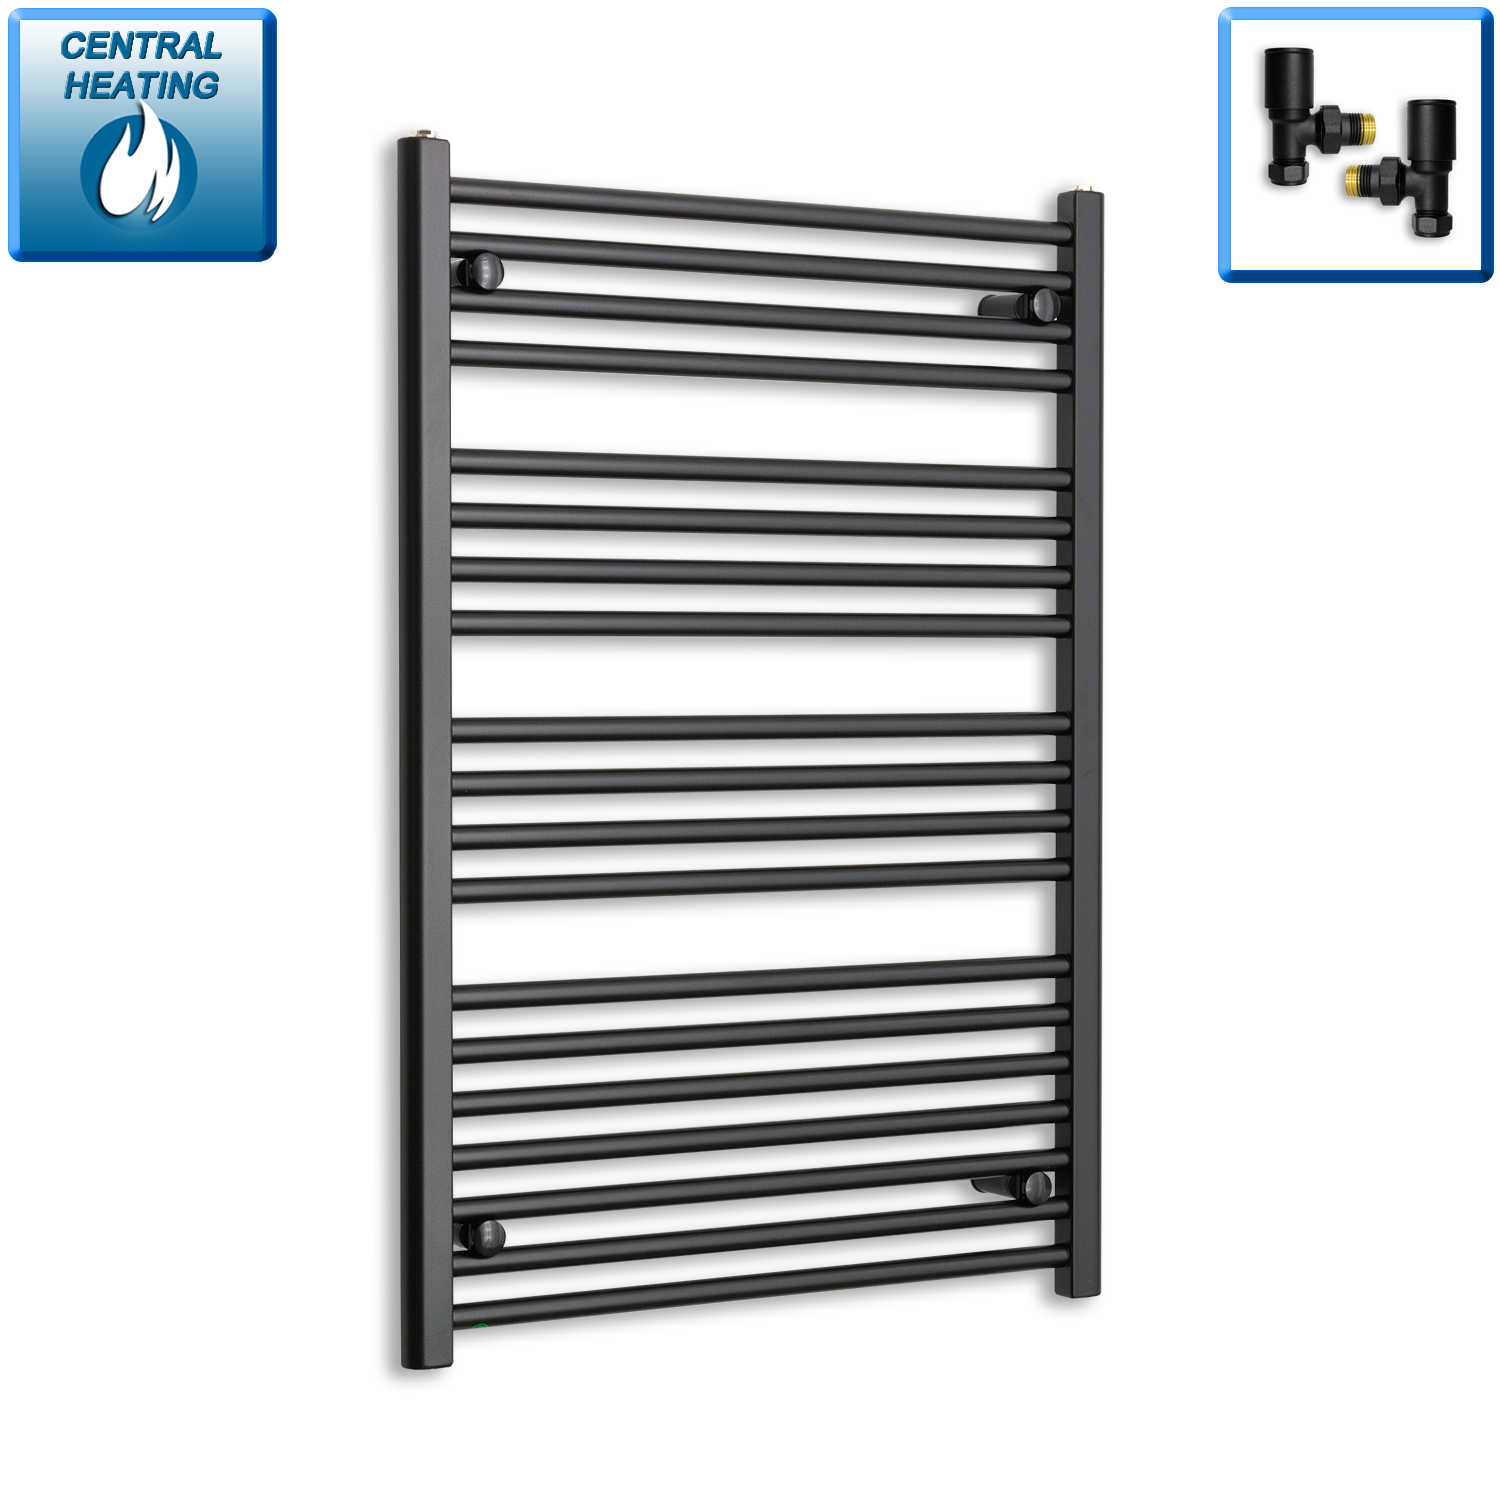 700mm Wide 1000mm High Flat Black Heated Towel Rail Radiator HTR,With Angled Valve